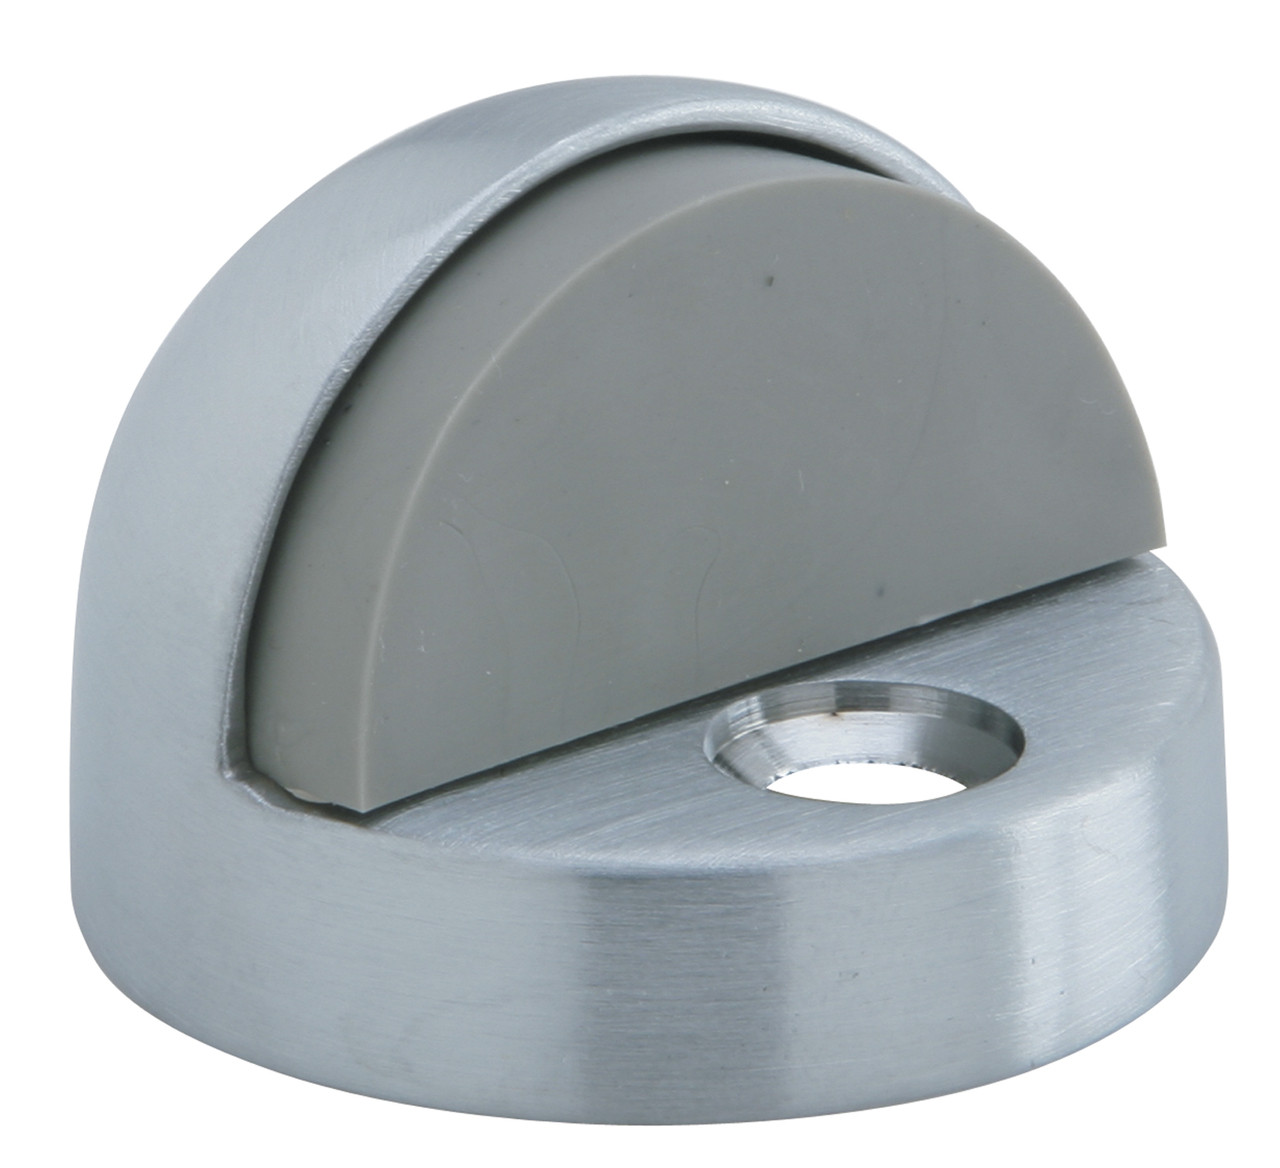 Ives Floor Stops Dome Stop 1 11 32 Height With Thresholds Use